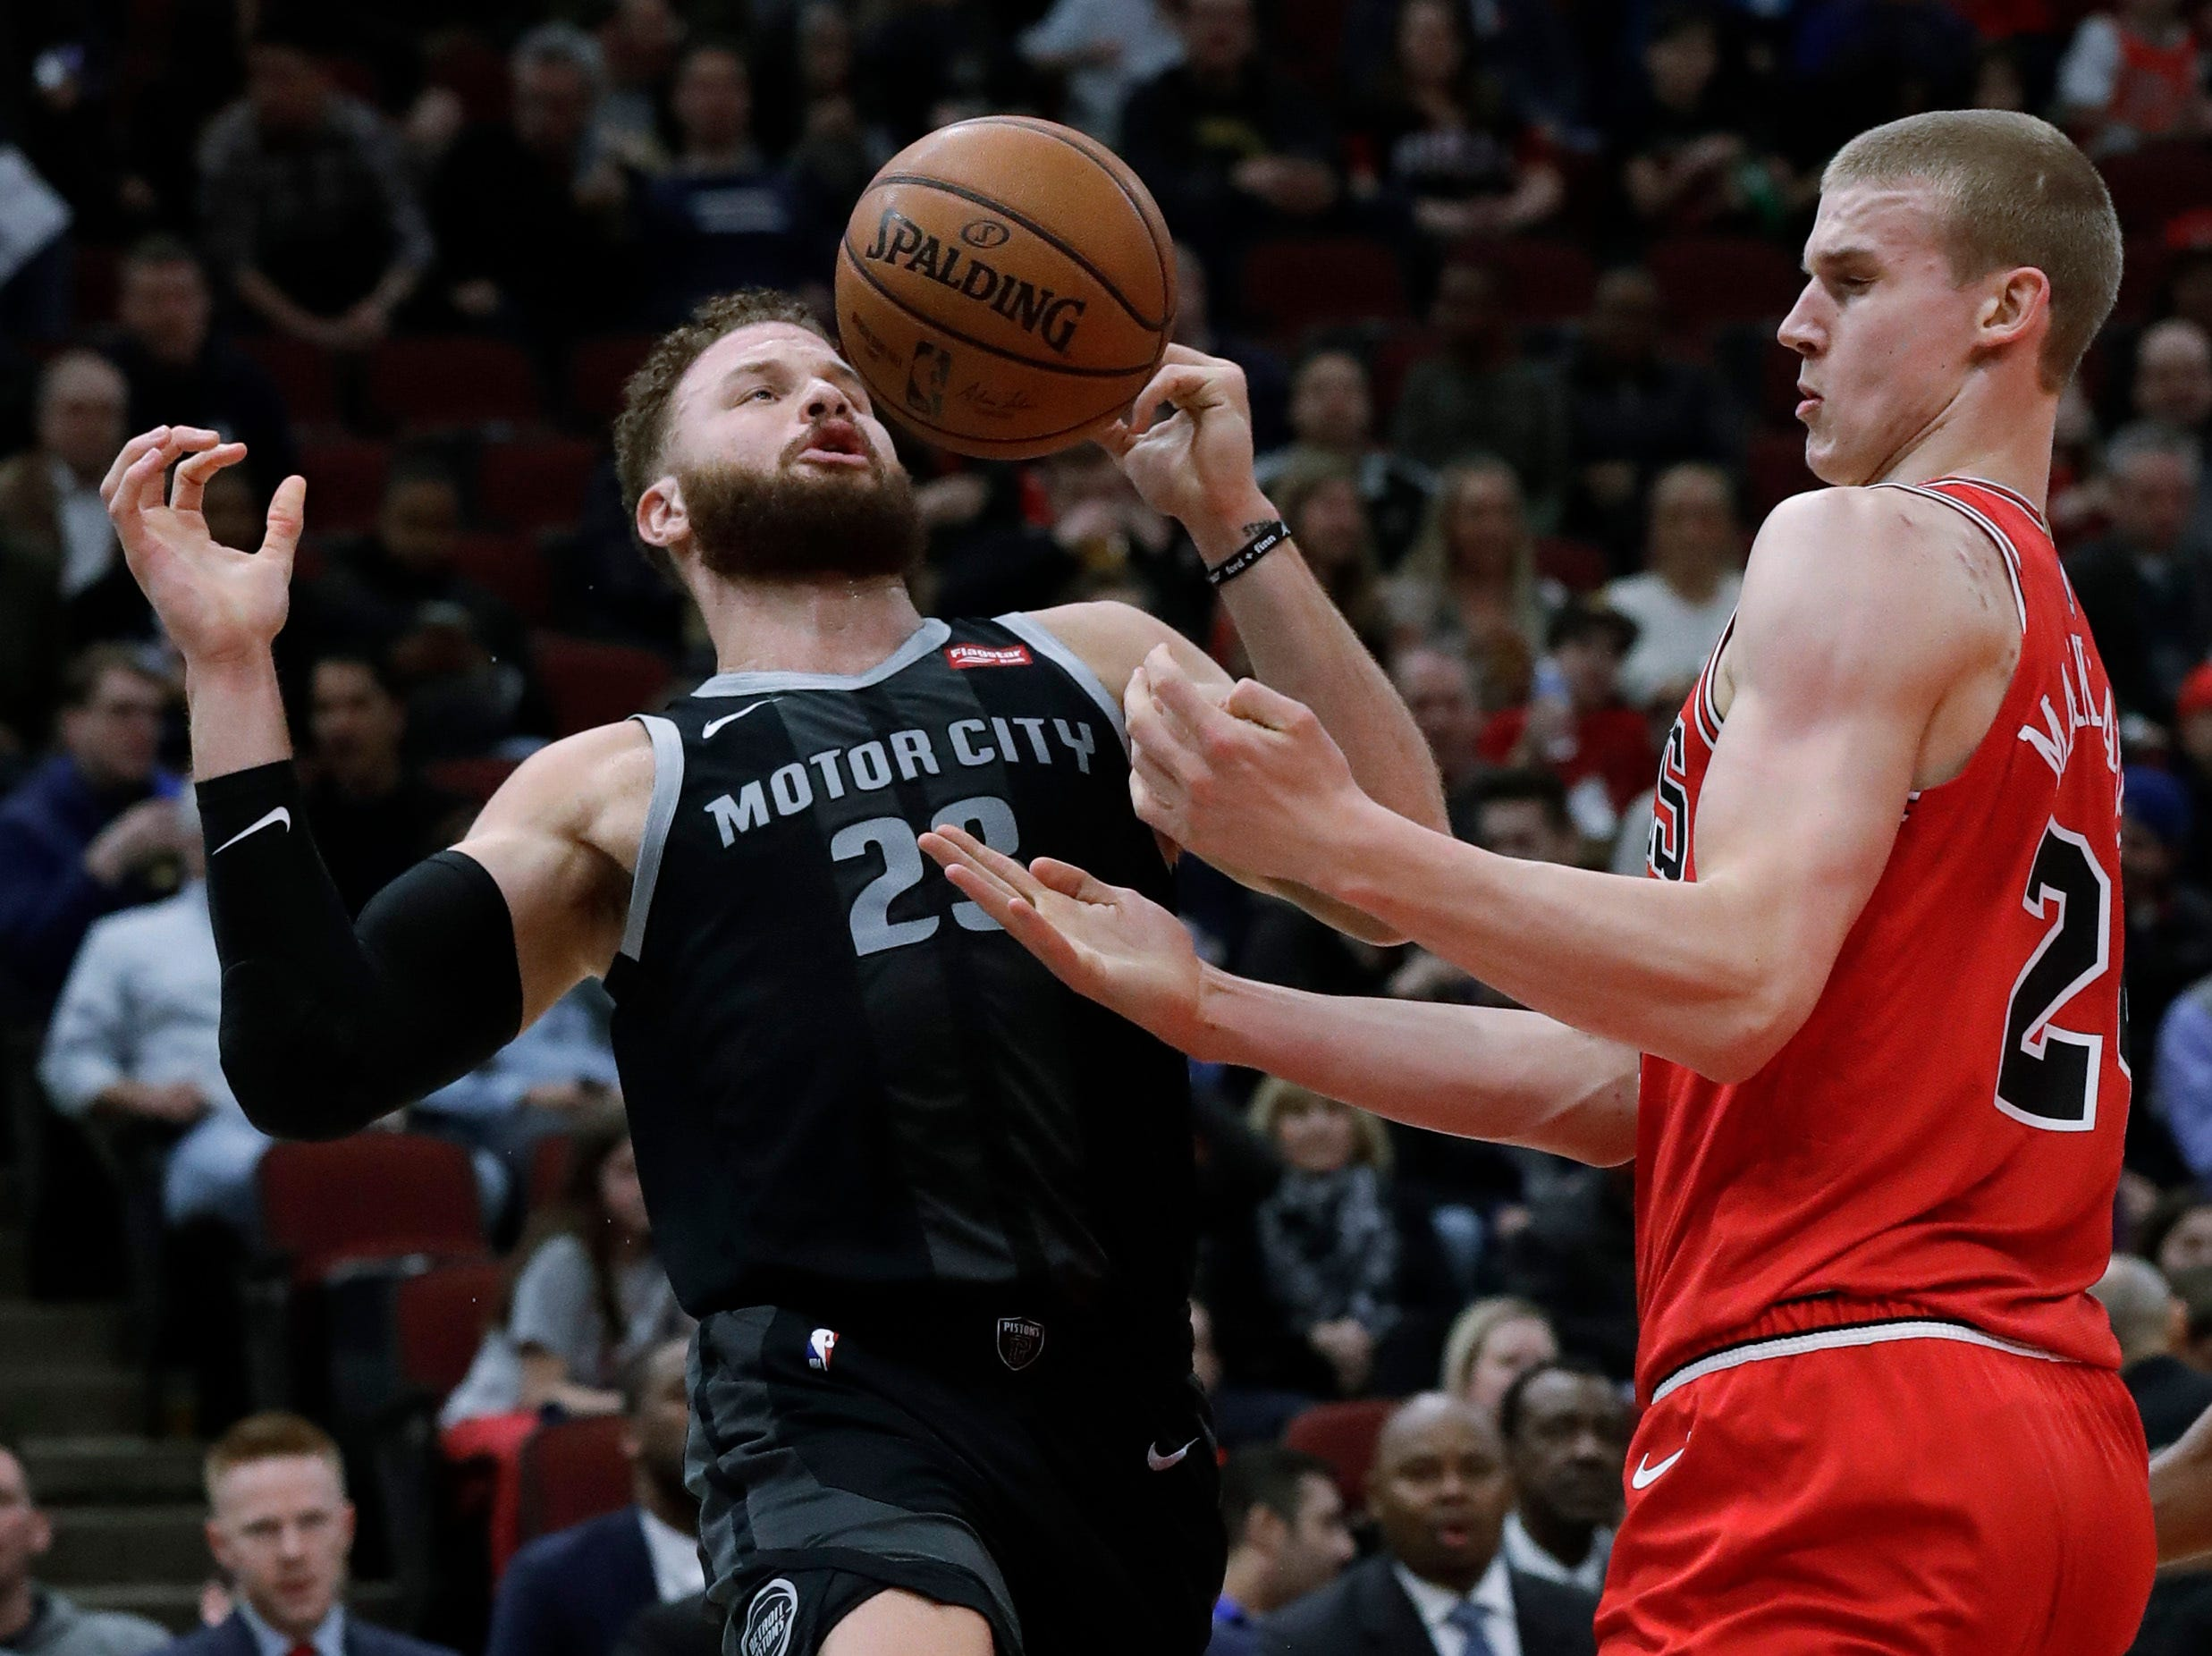 Detroit Pistons forward Blake Griffin, left, and Chicago Bulls forward Lauri Markkanen look to get possession of the ball during the first half of an NBA basketball game.